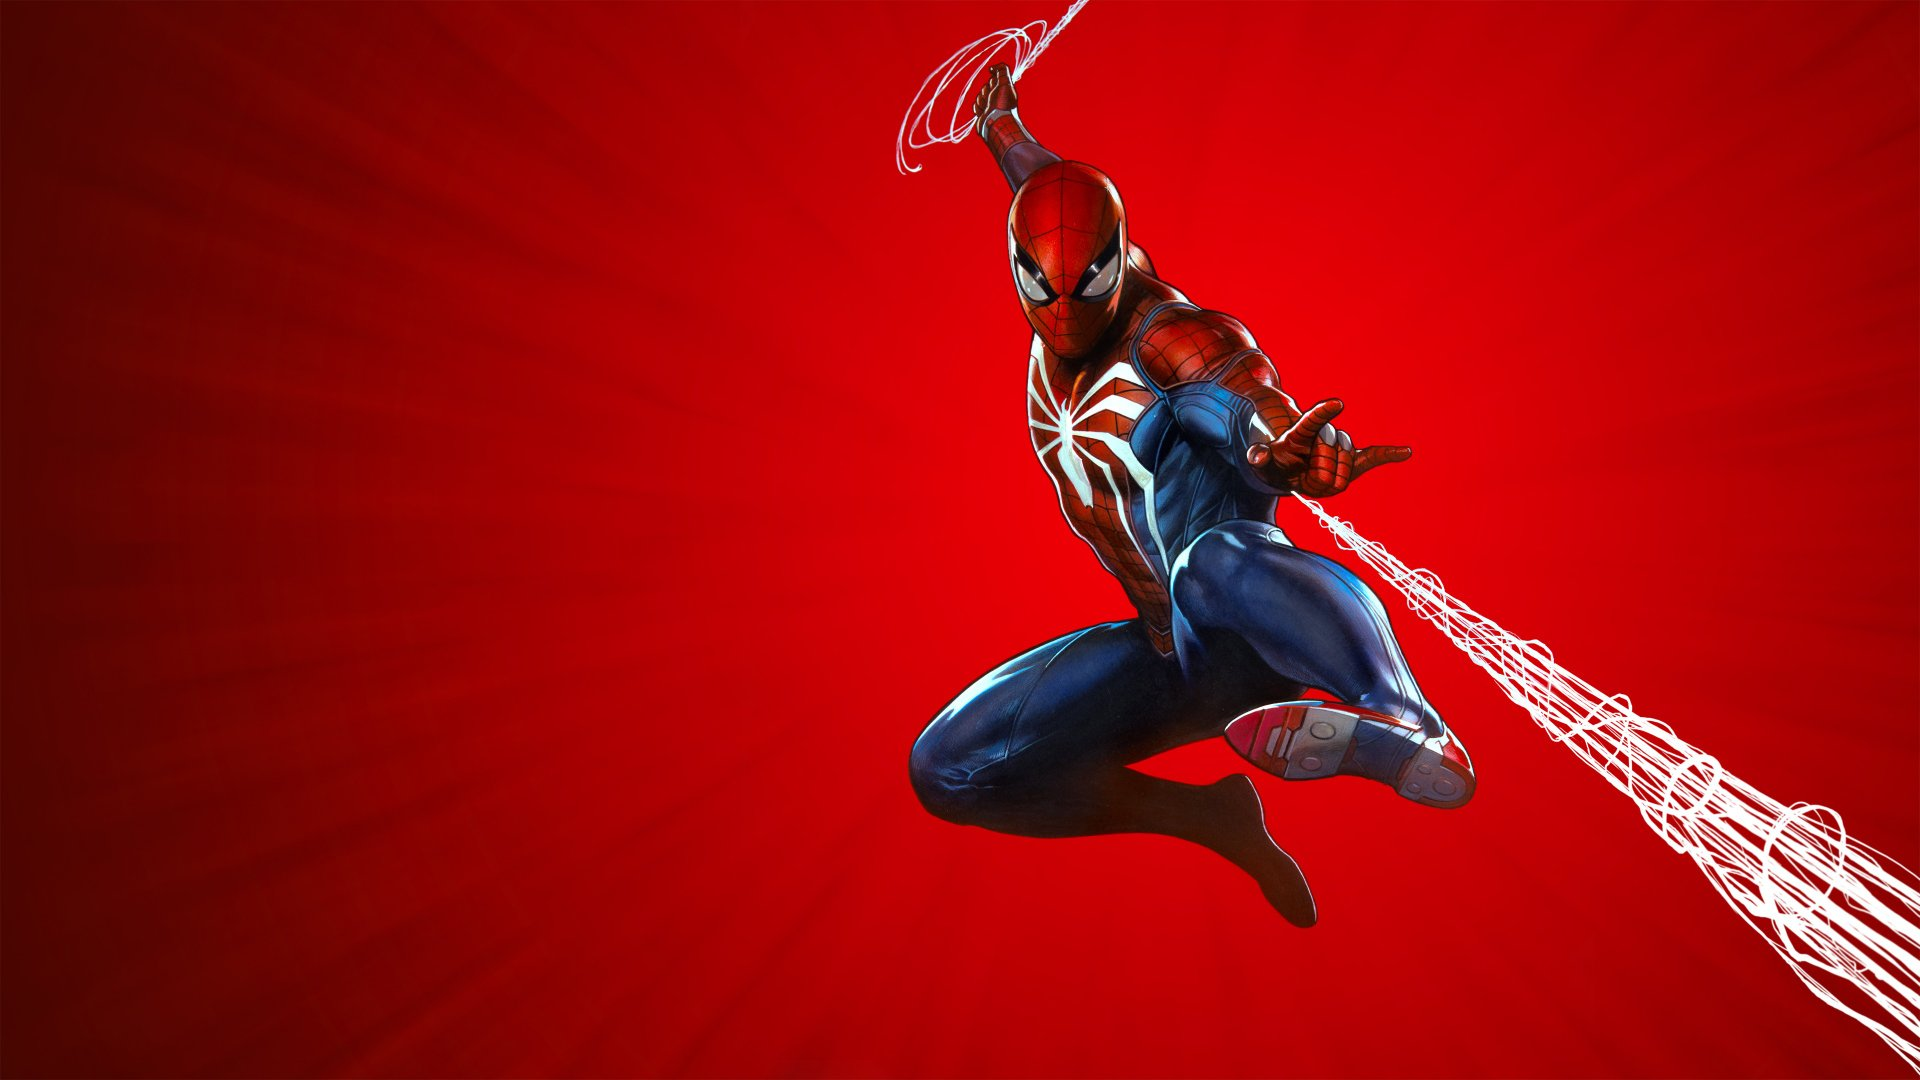 Spider Man PS4 Game Cover Background 1920x1080